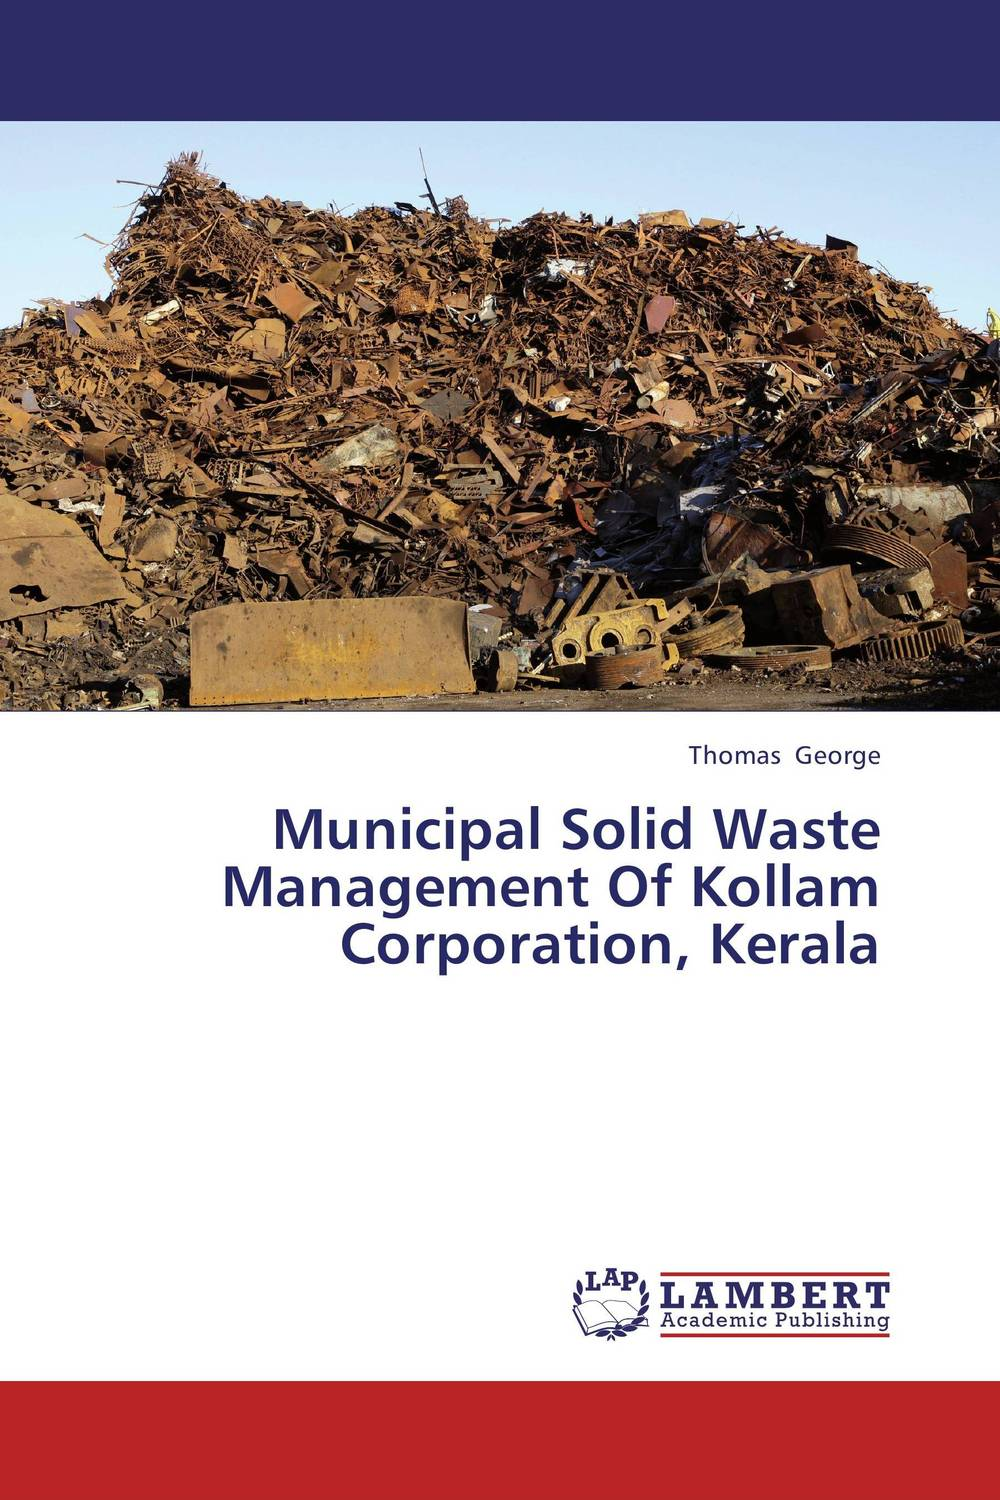 Municipal Solid Waste Management Of Kollam Corporation, Kerala the optimal planning for power generation by waste